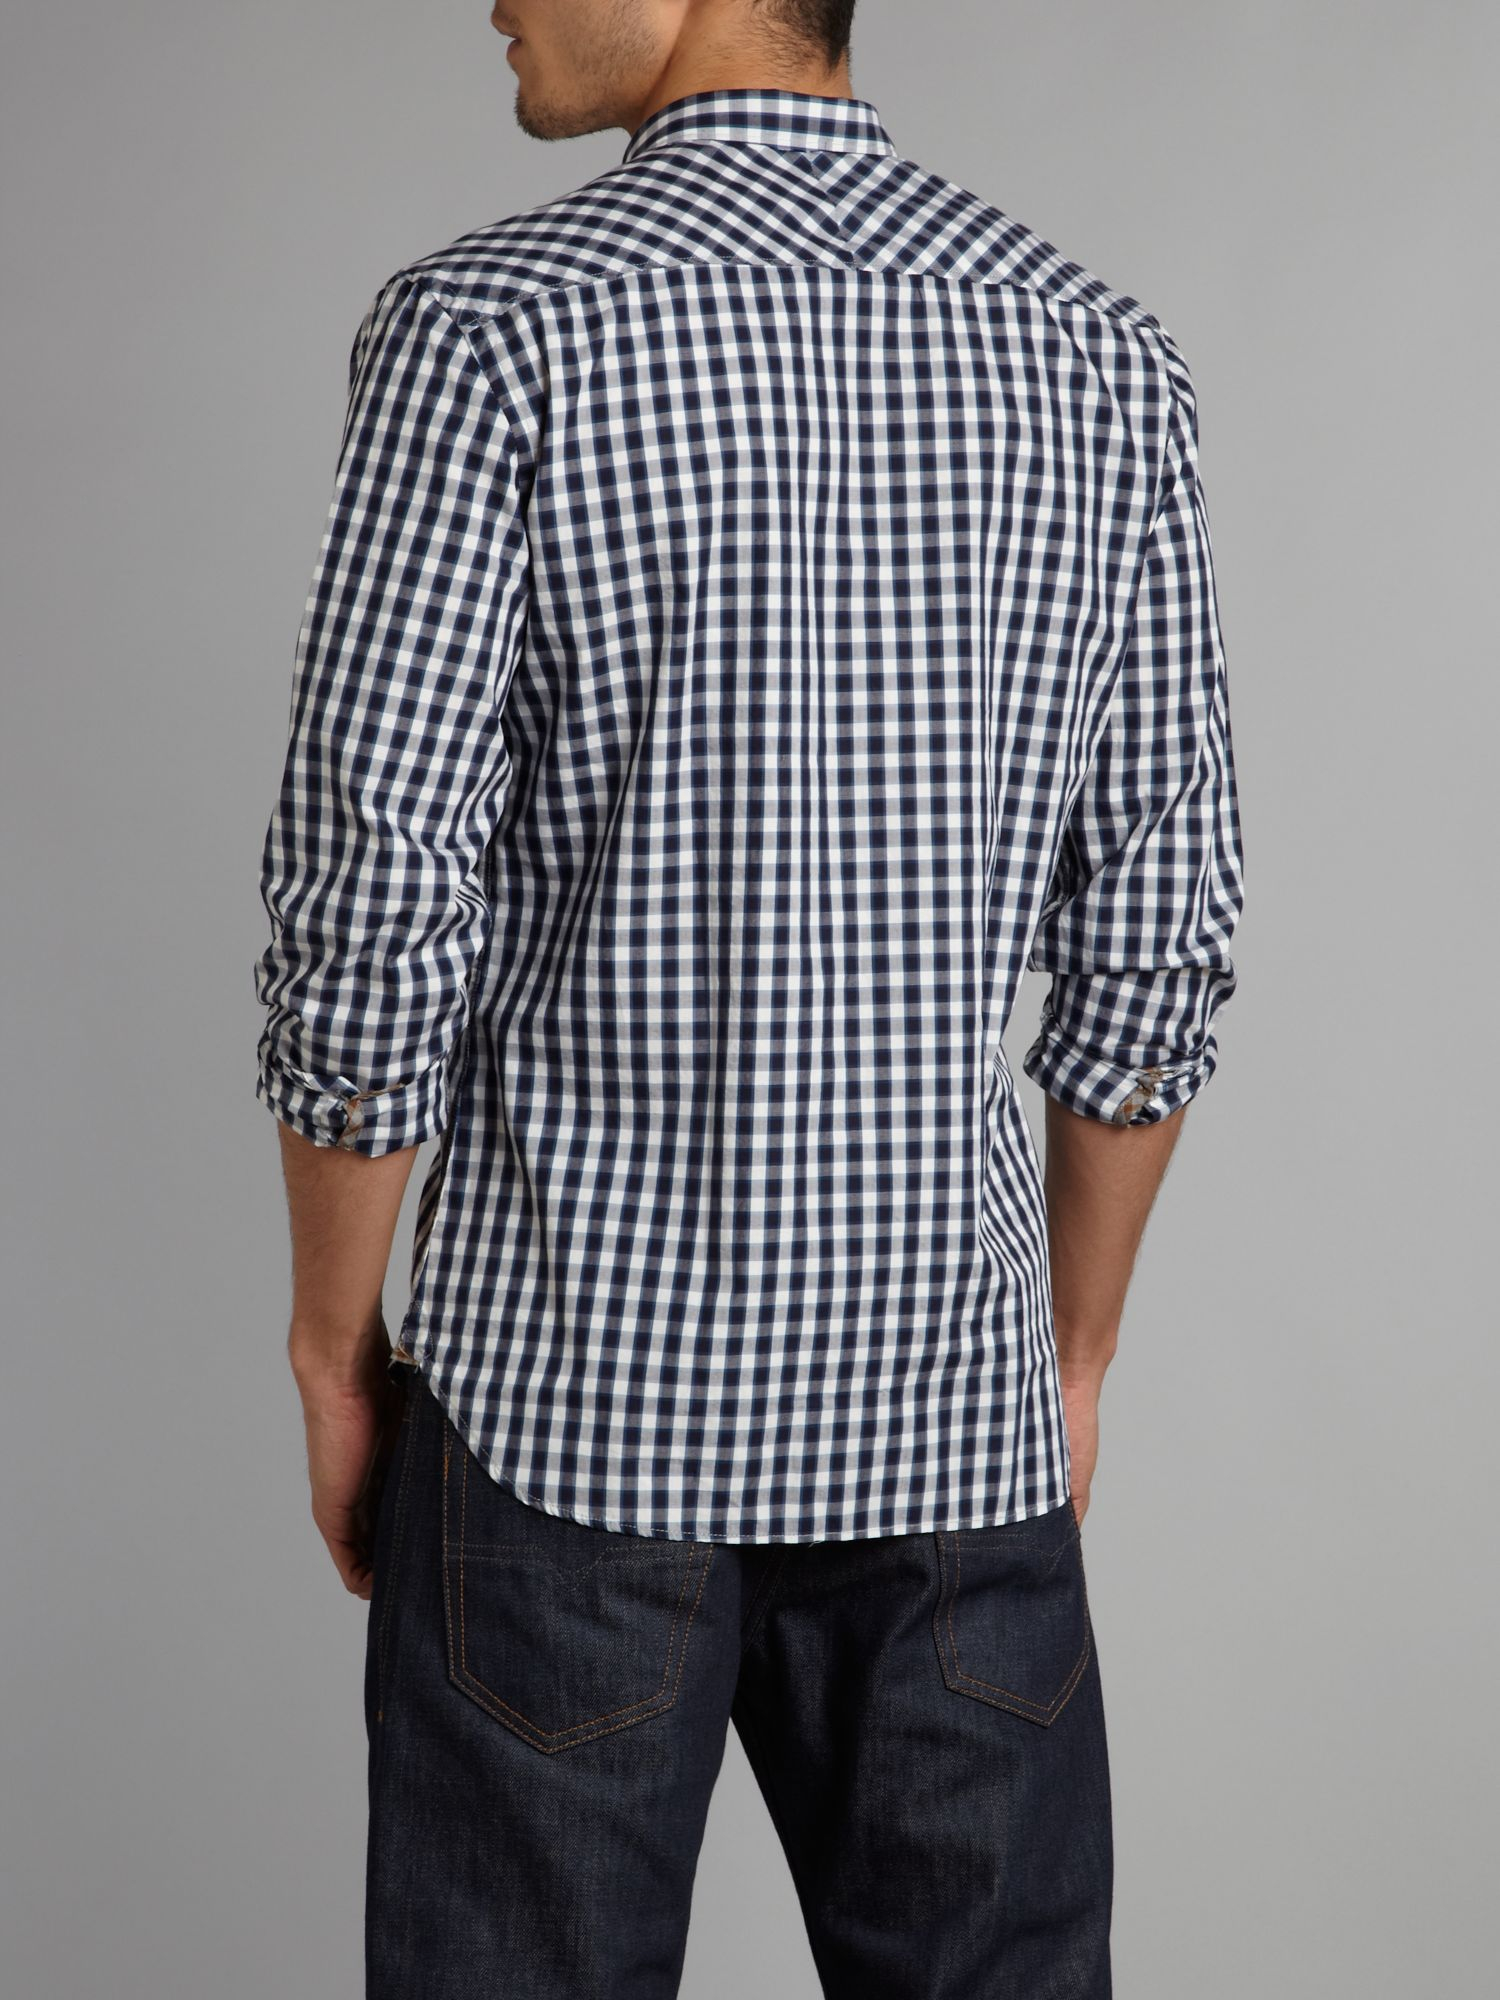 paul smith fashion check gingham shirt in blue for lyst